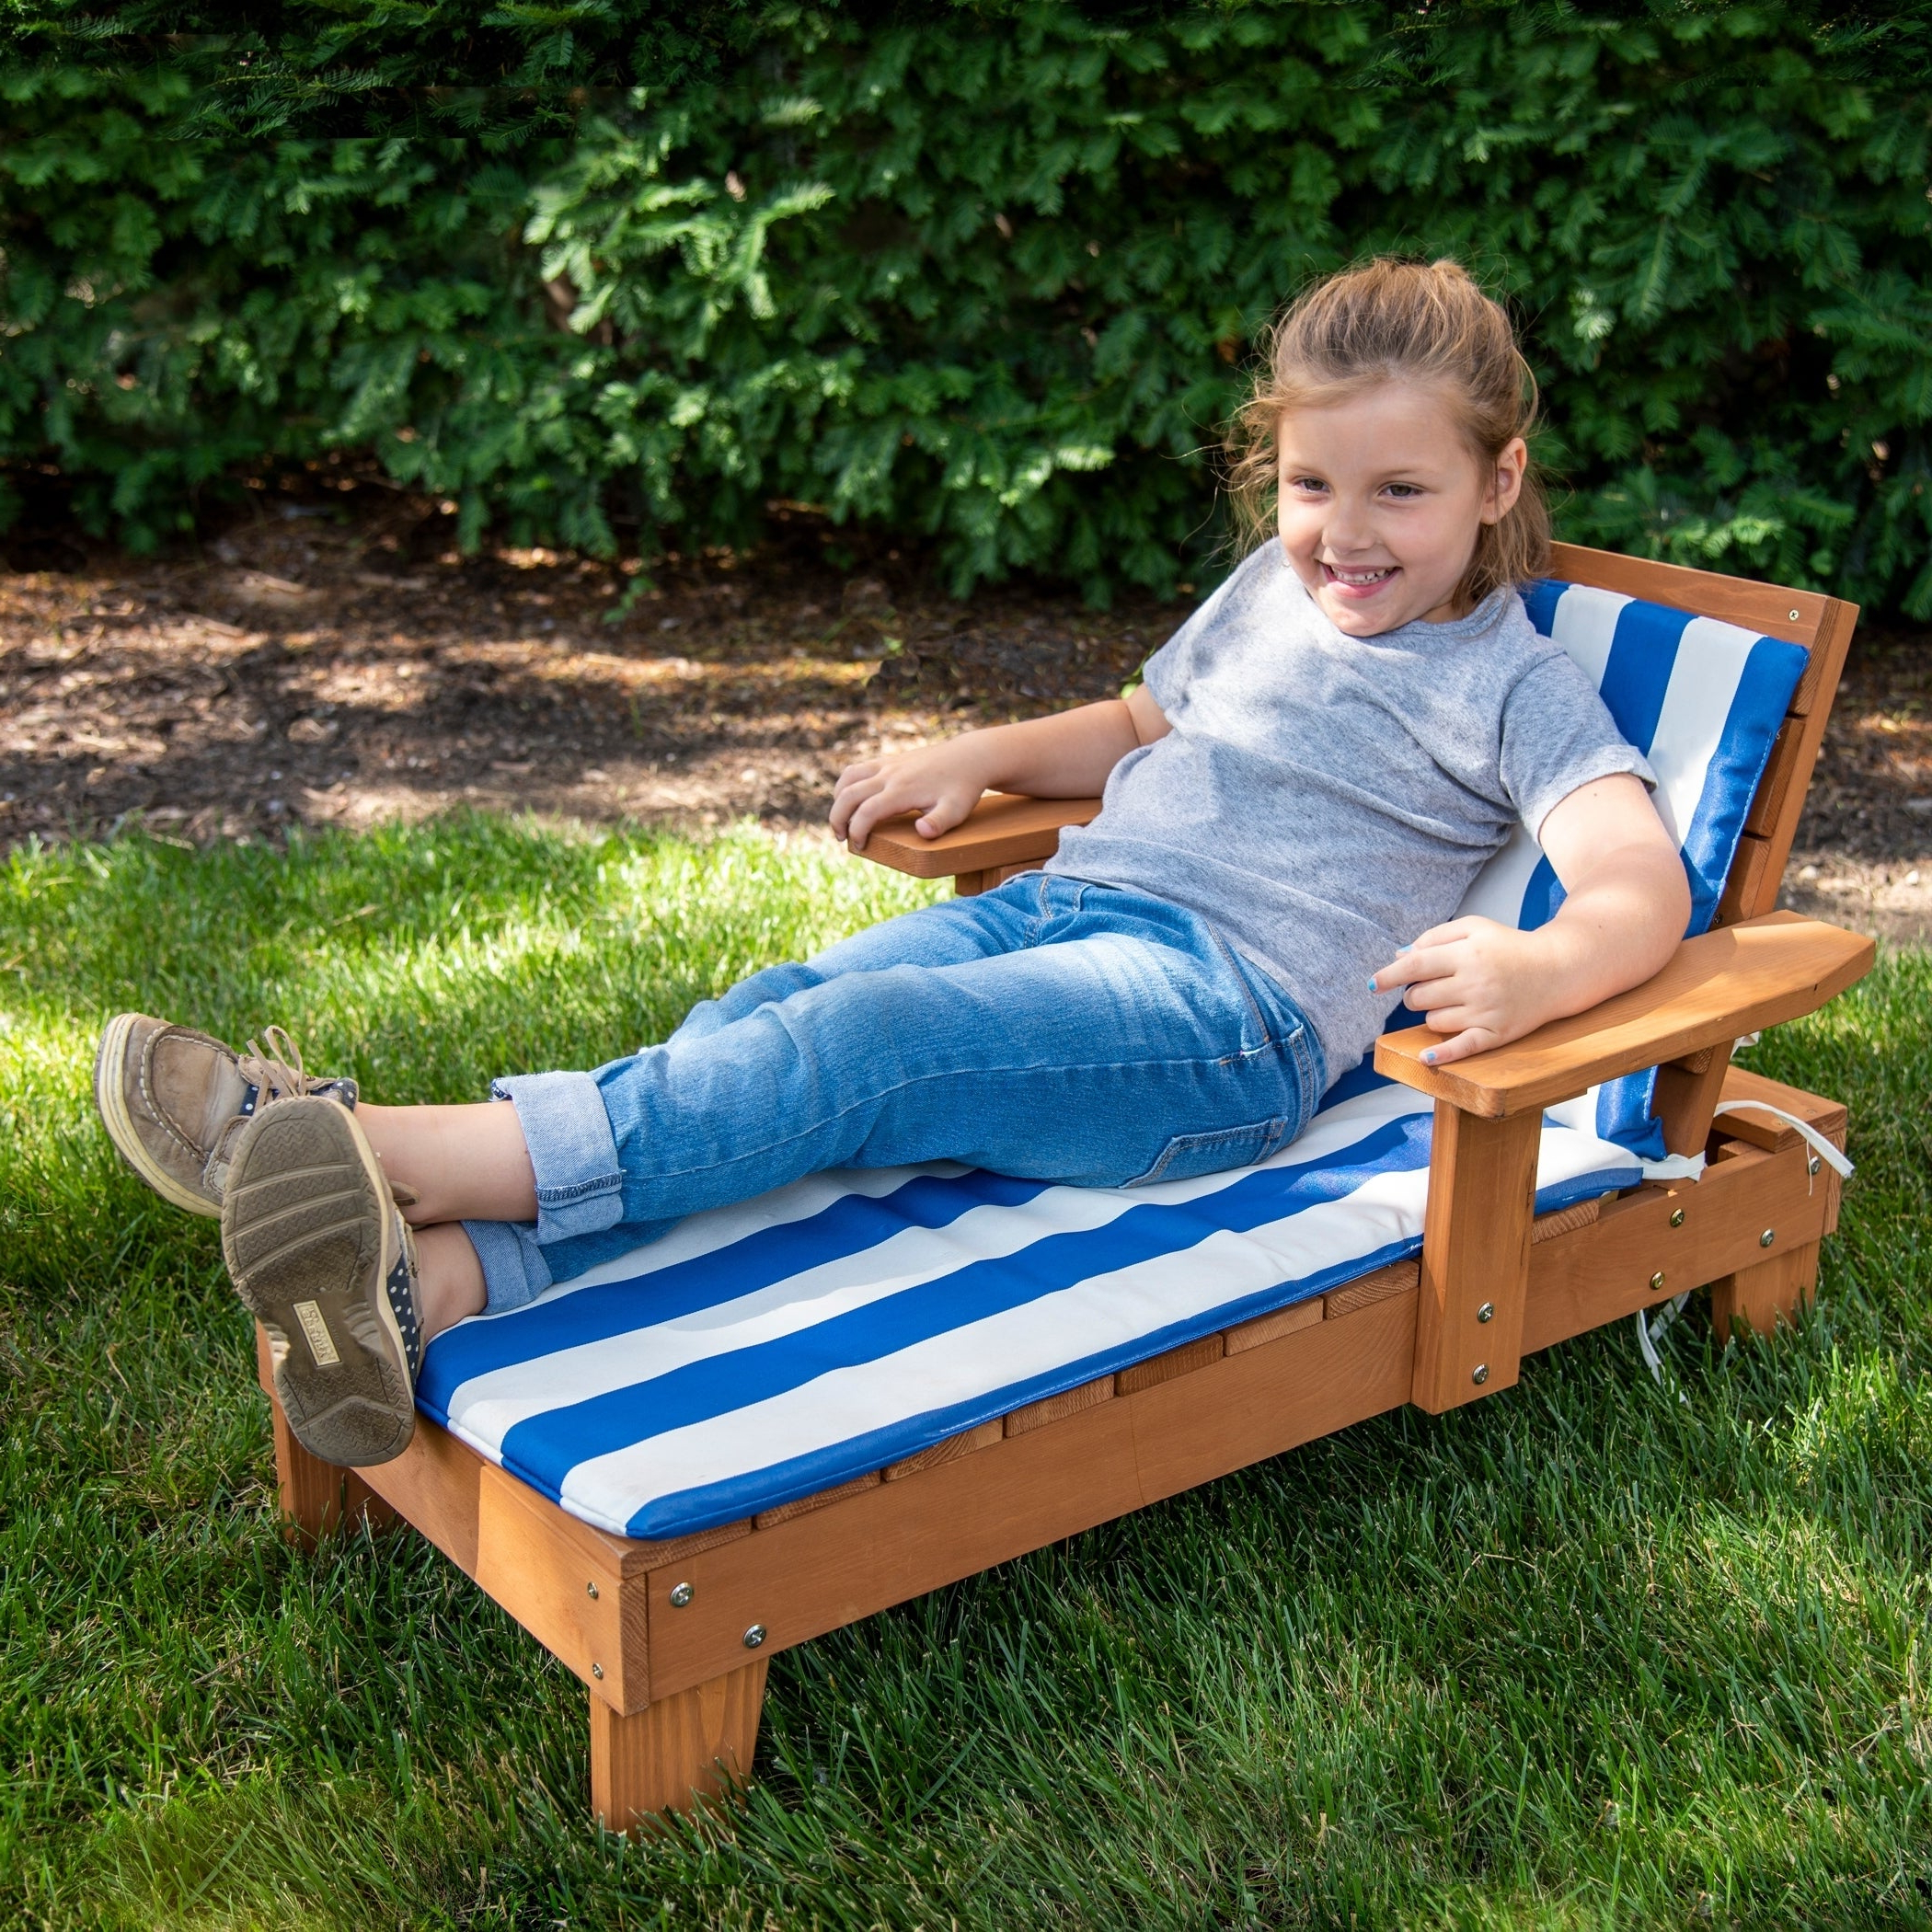 2020 Homeware Kid's Wood Blue And White Cushion Outdoor Chaise Lounge Chair Pertaining To Wood Blue And White Cushion Outdoor Chaise Lounge Chairs (Gallery 5 of 25)